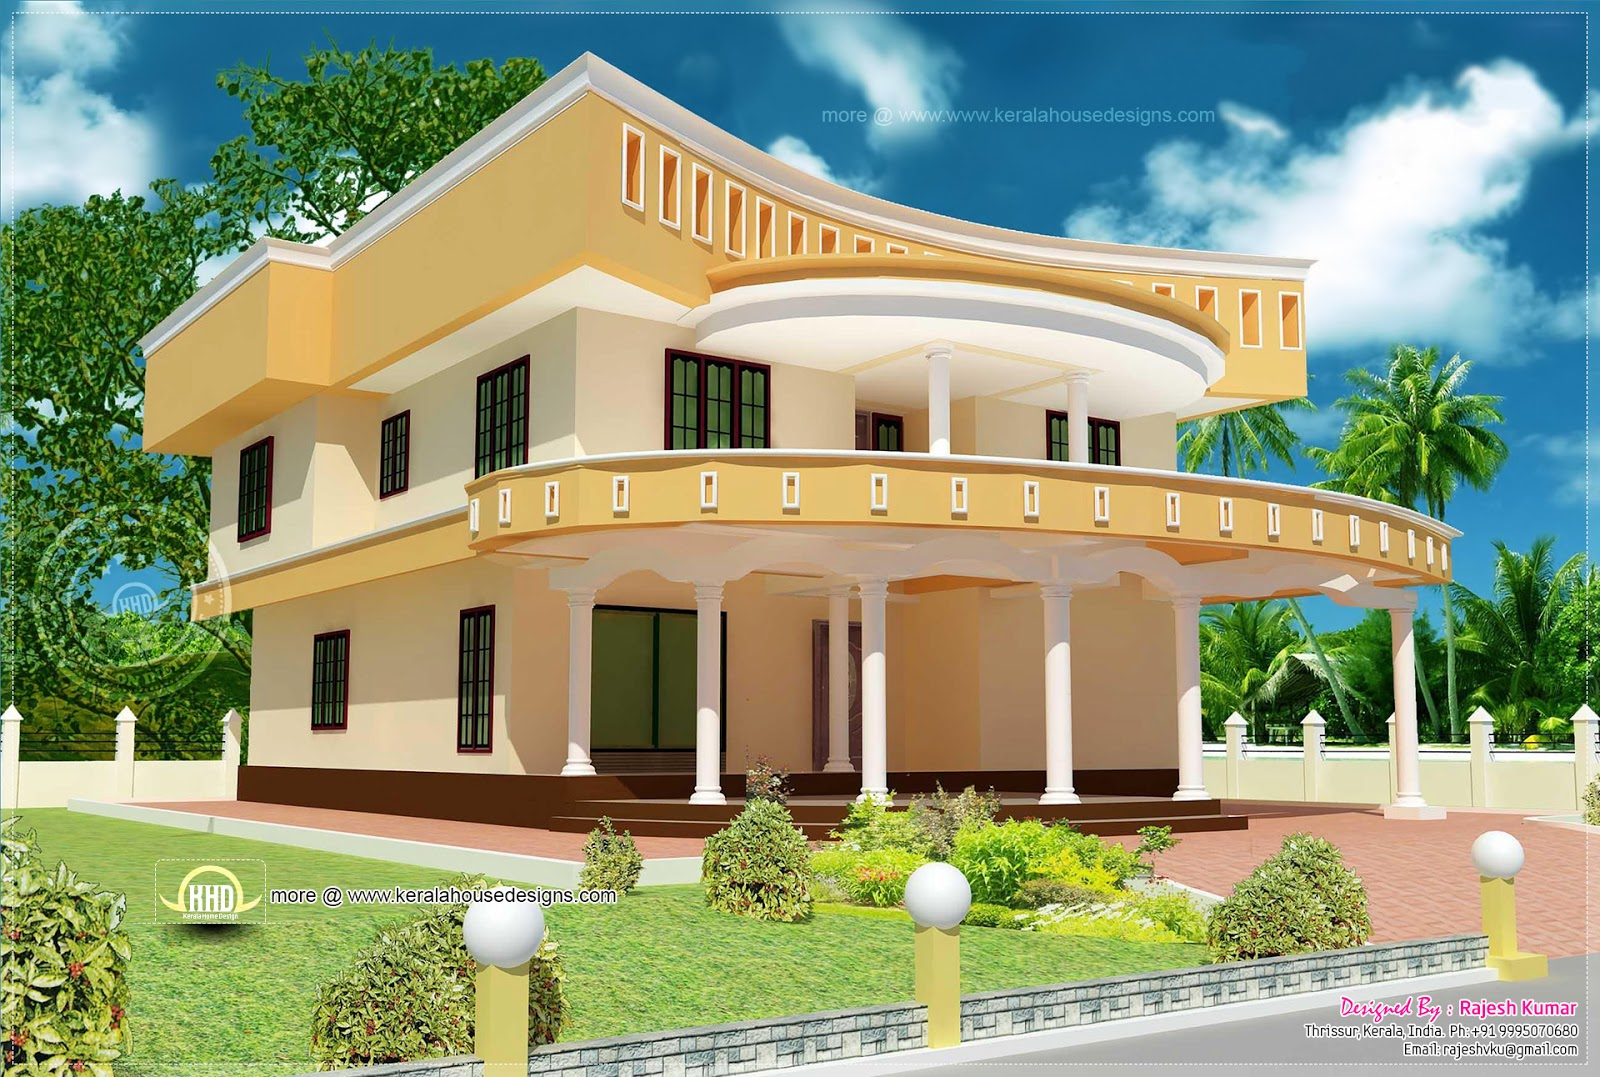 Unique home design in kerala kerala home design and floor plans - Unique house design ...